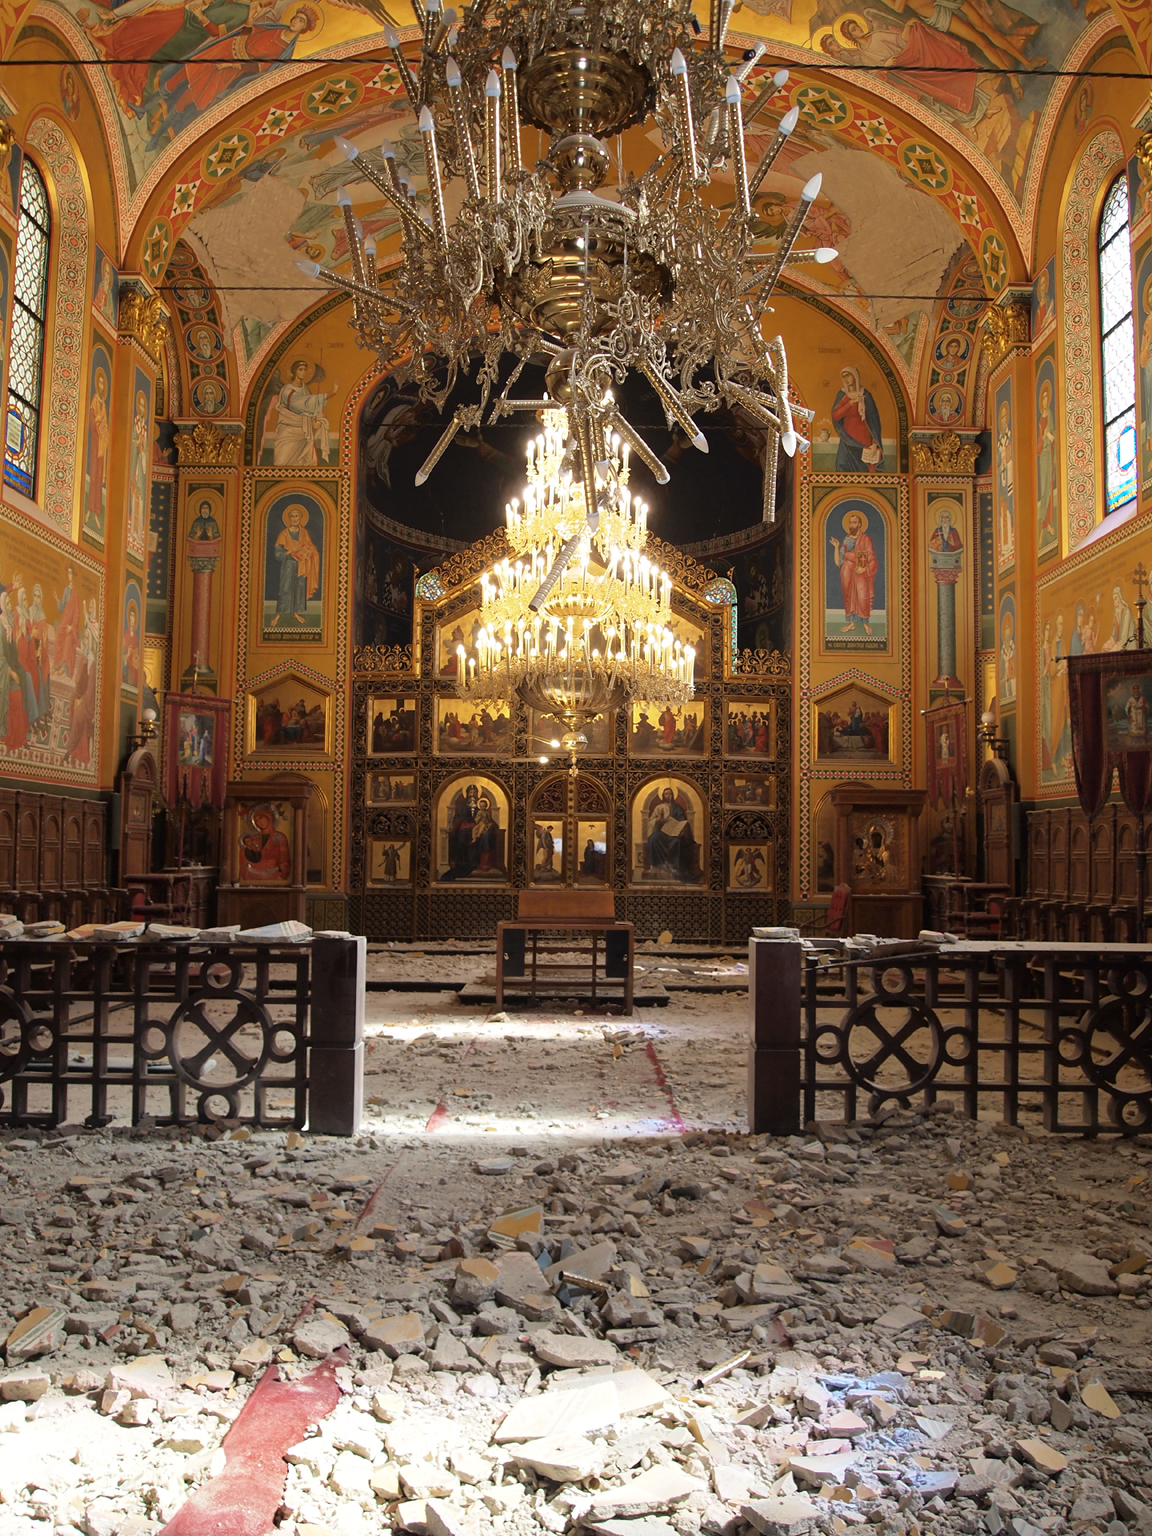 The interior of the Orthodox Church after the earthquake; photo by the author, March 28, 2020.